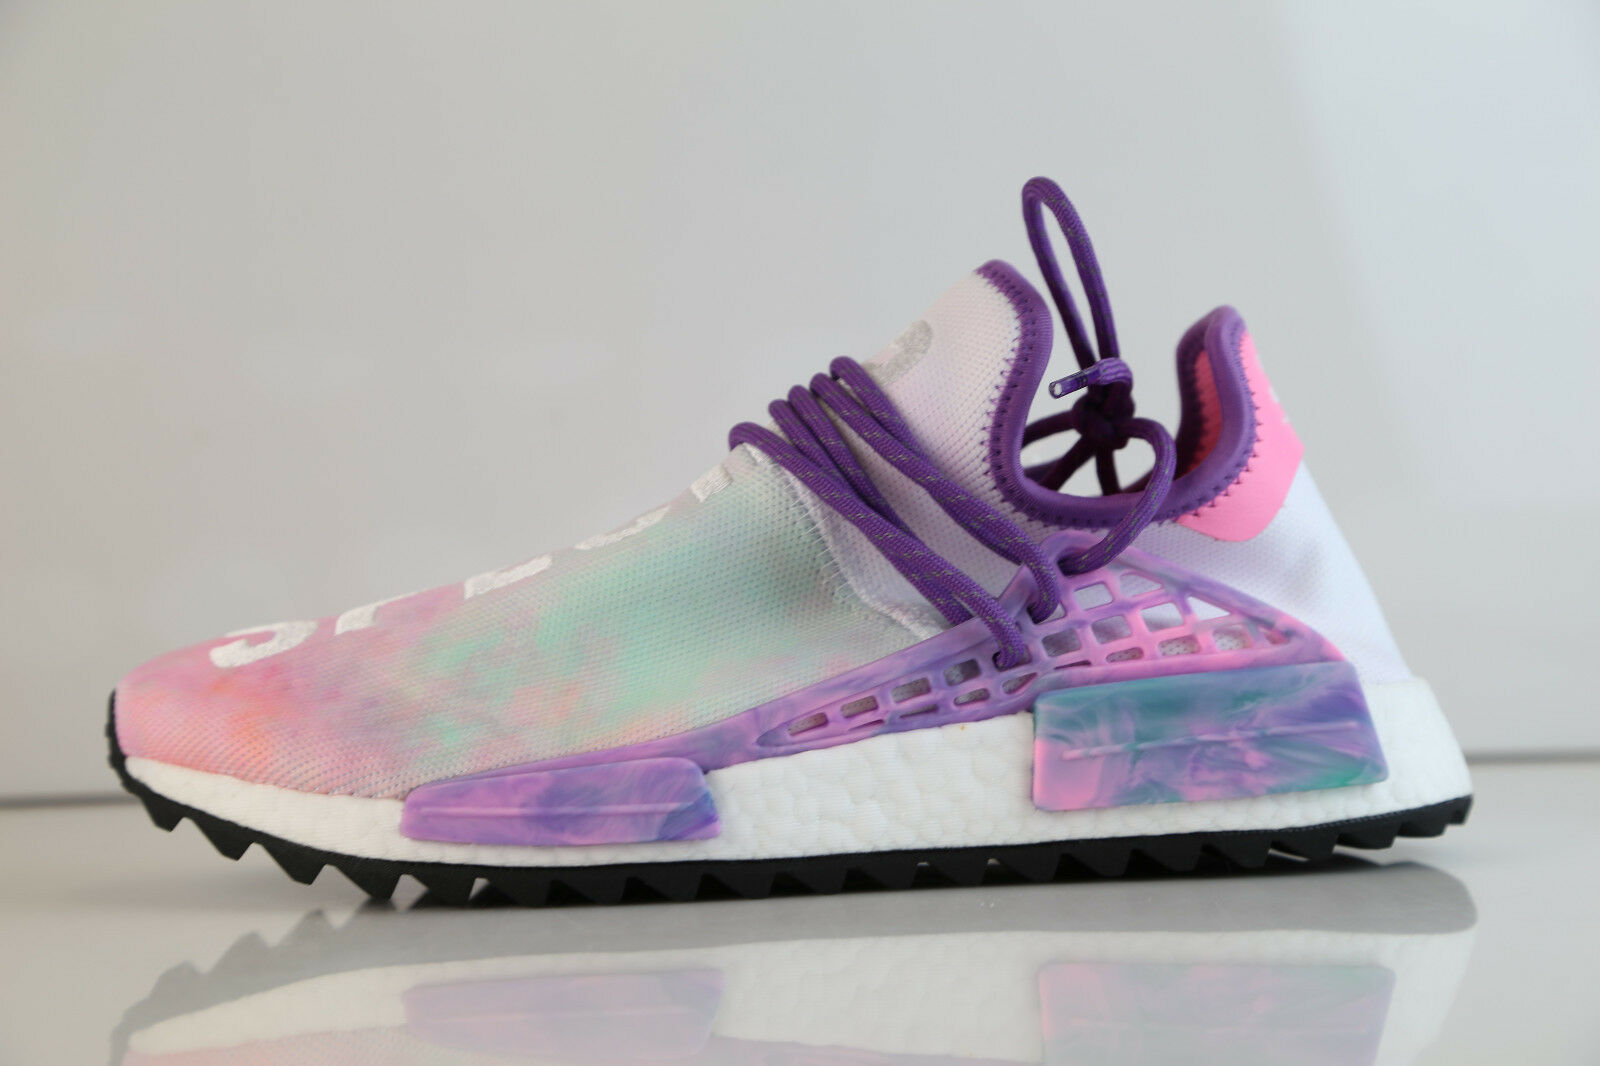 Adidas PW Pharrell Williams resplandor HOLI NMD Trail Human Race Perfecto Estado Rosa resplandor Williams AC7362 5-13 f2a64a